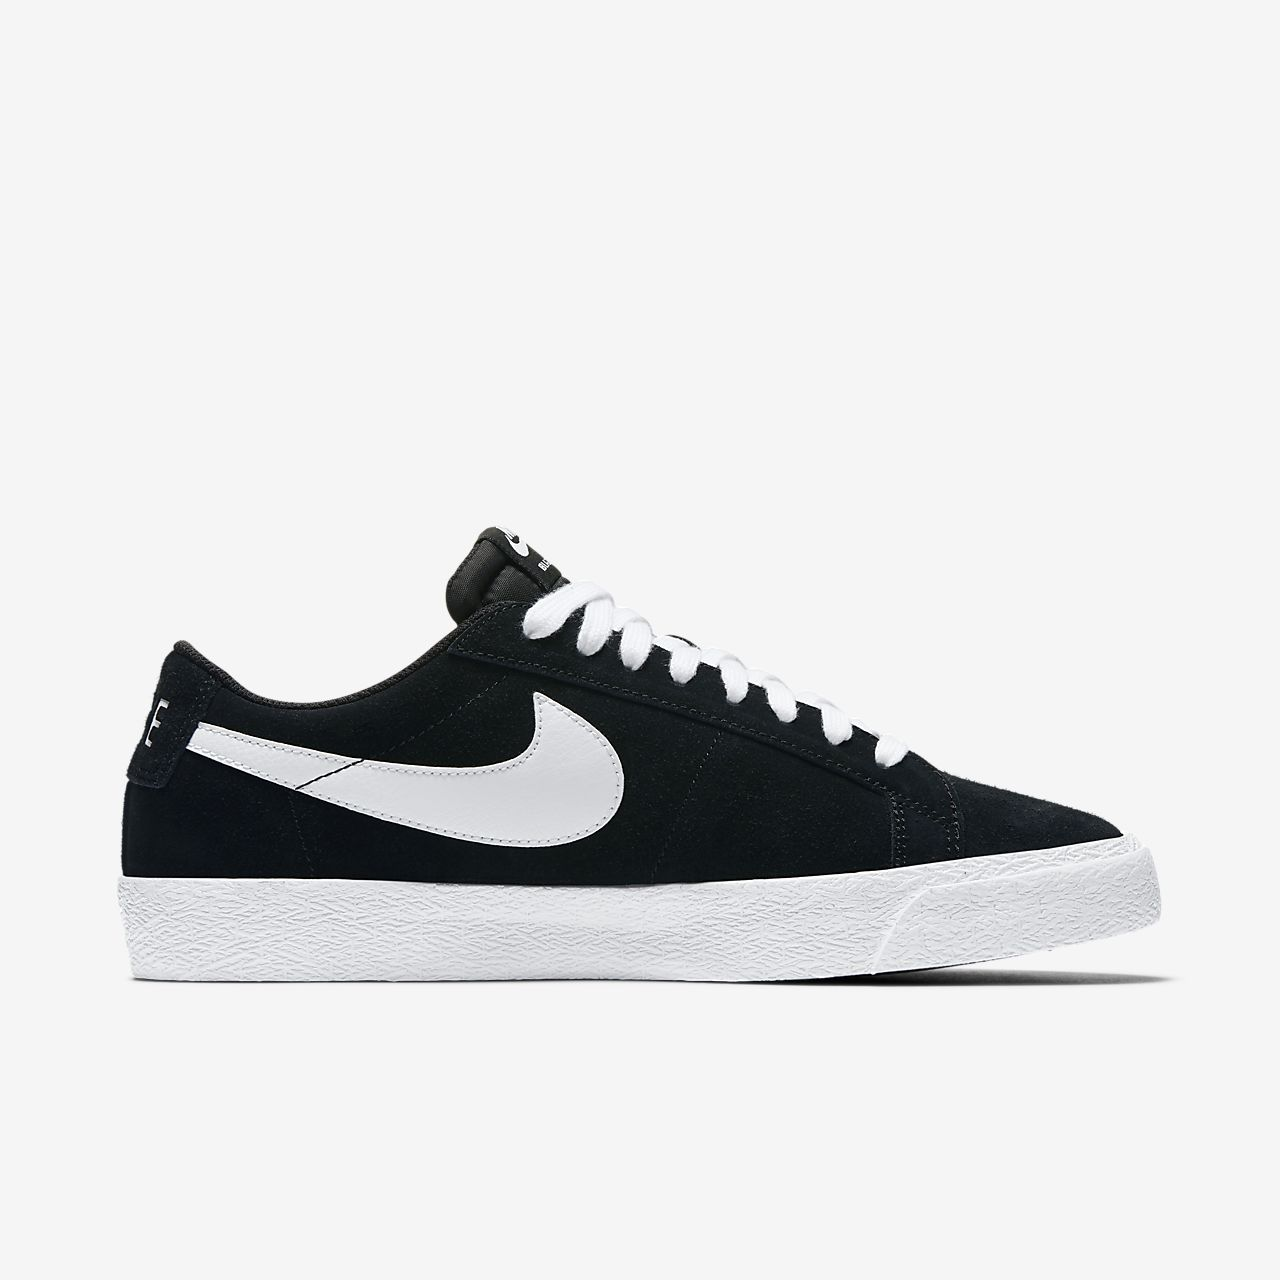 separation shoes 49f9c 92990 ... Nike SB Blazer Zoom Low Men s Skateboarding Shoe